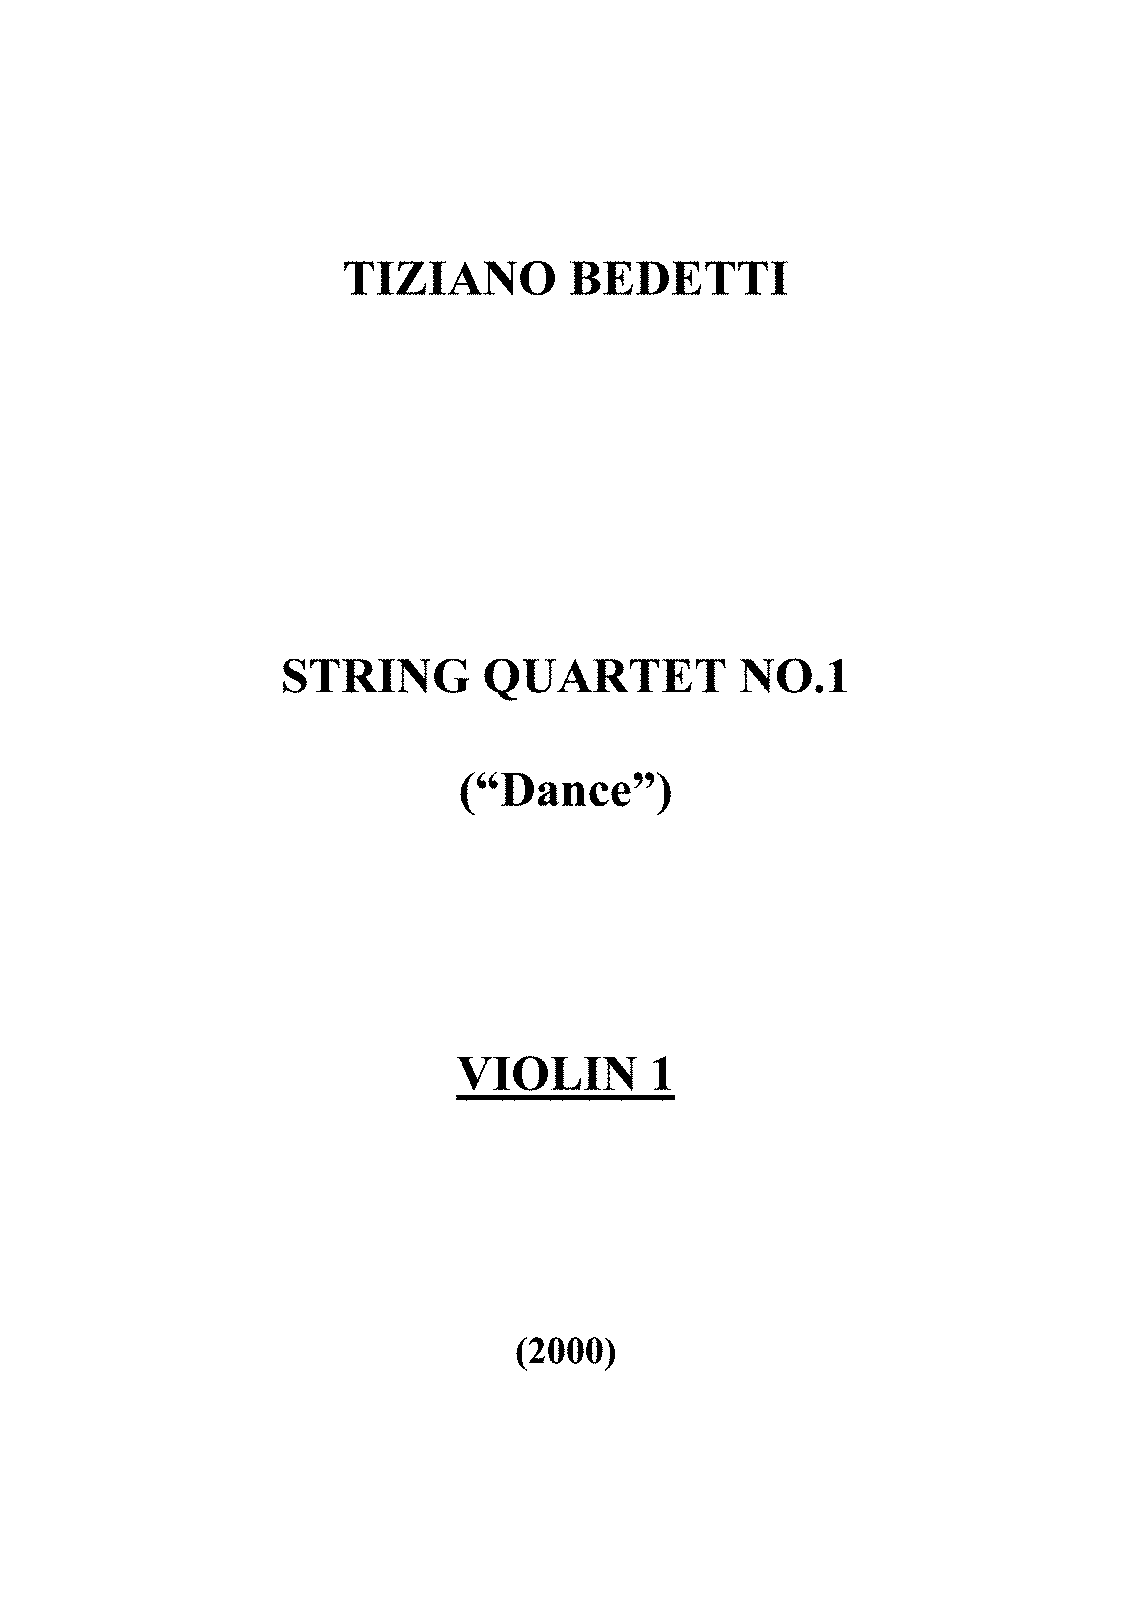 PMLP400431-Bedetti - String Quartet N°1 - Violin 1 part.pdf